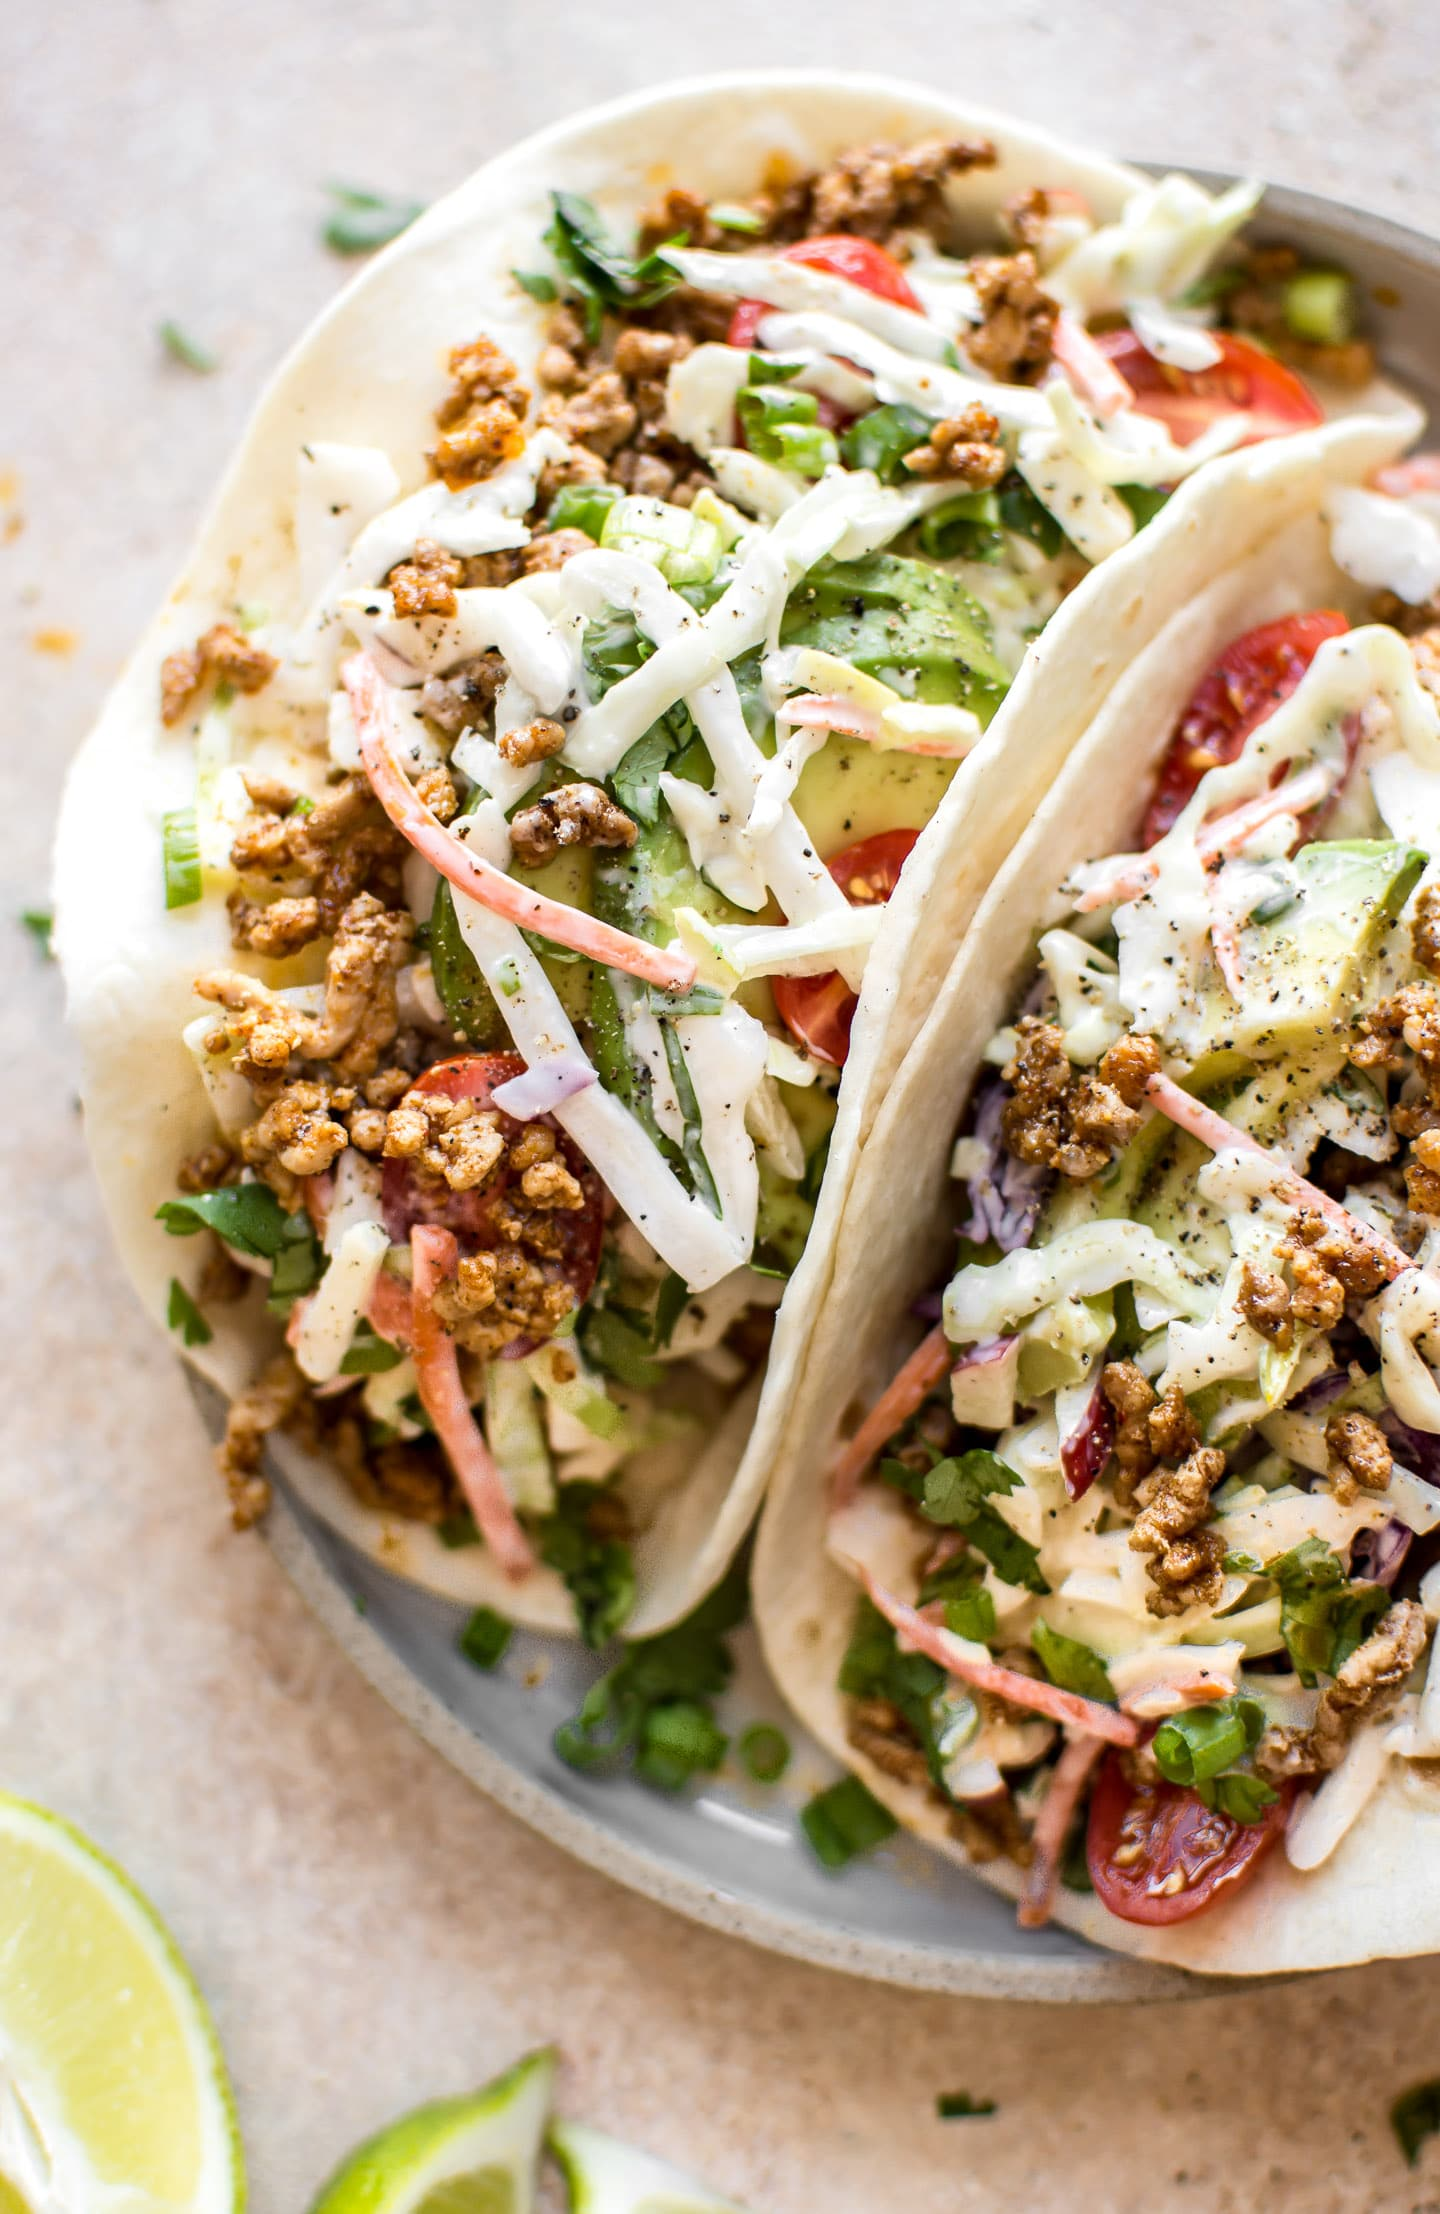 These ground pork tacos with apple slaw have a delicious seasoning mix that will make Taco Tuesday even better! The perfect easy dinner for meat lovers.